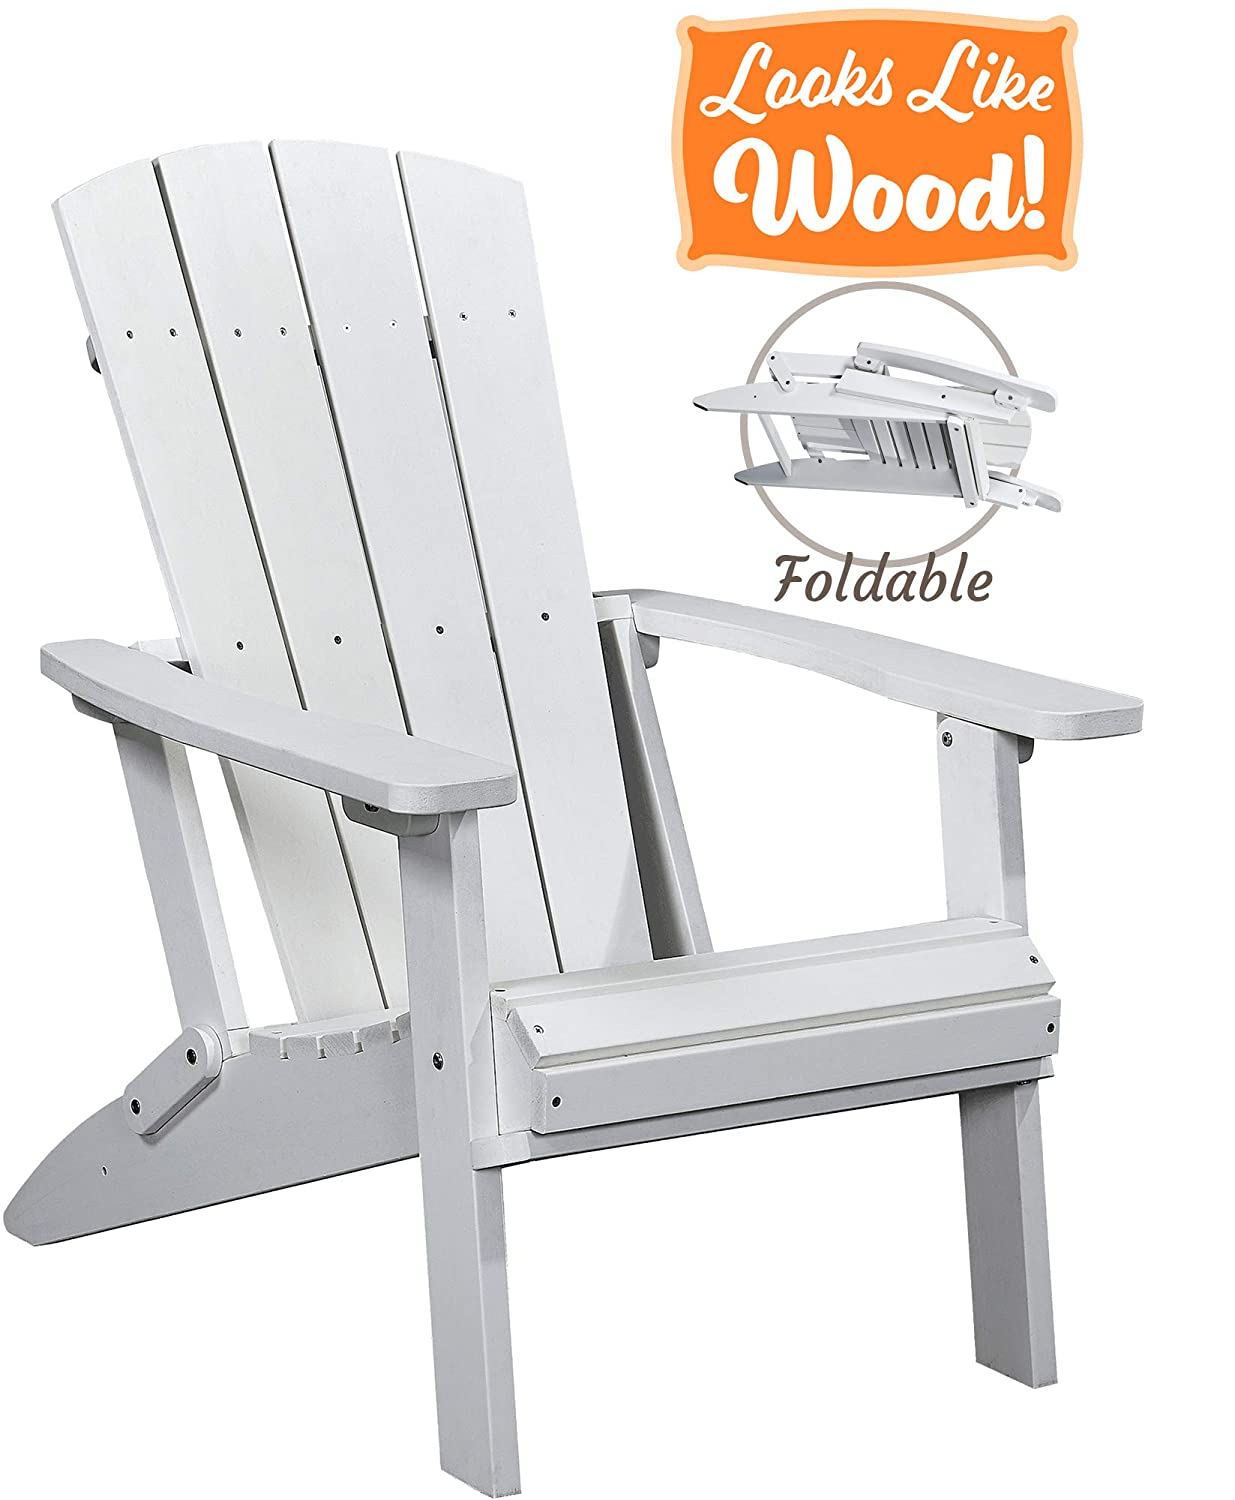 PolyTEAK Modern Oversized Folding Poly Adirondack Chair, Powder White Adult-Size, Weather Resistant, Made from Plastic